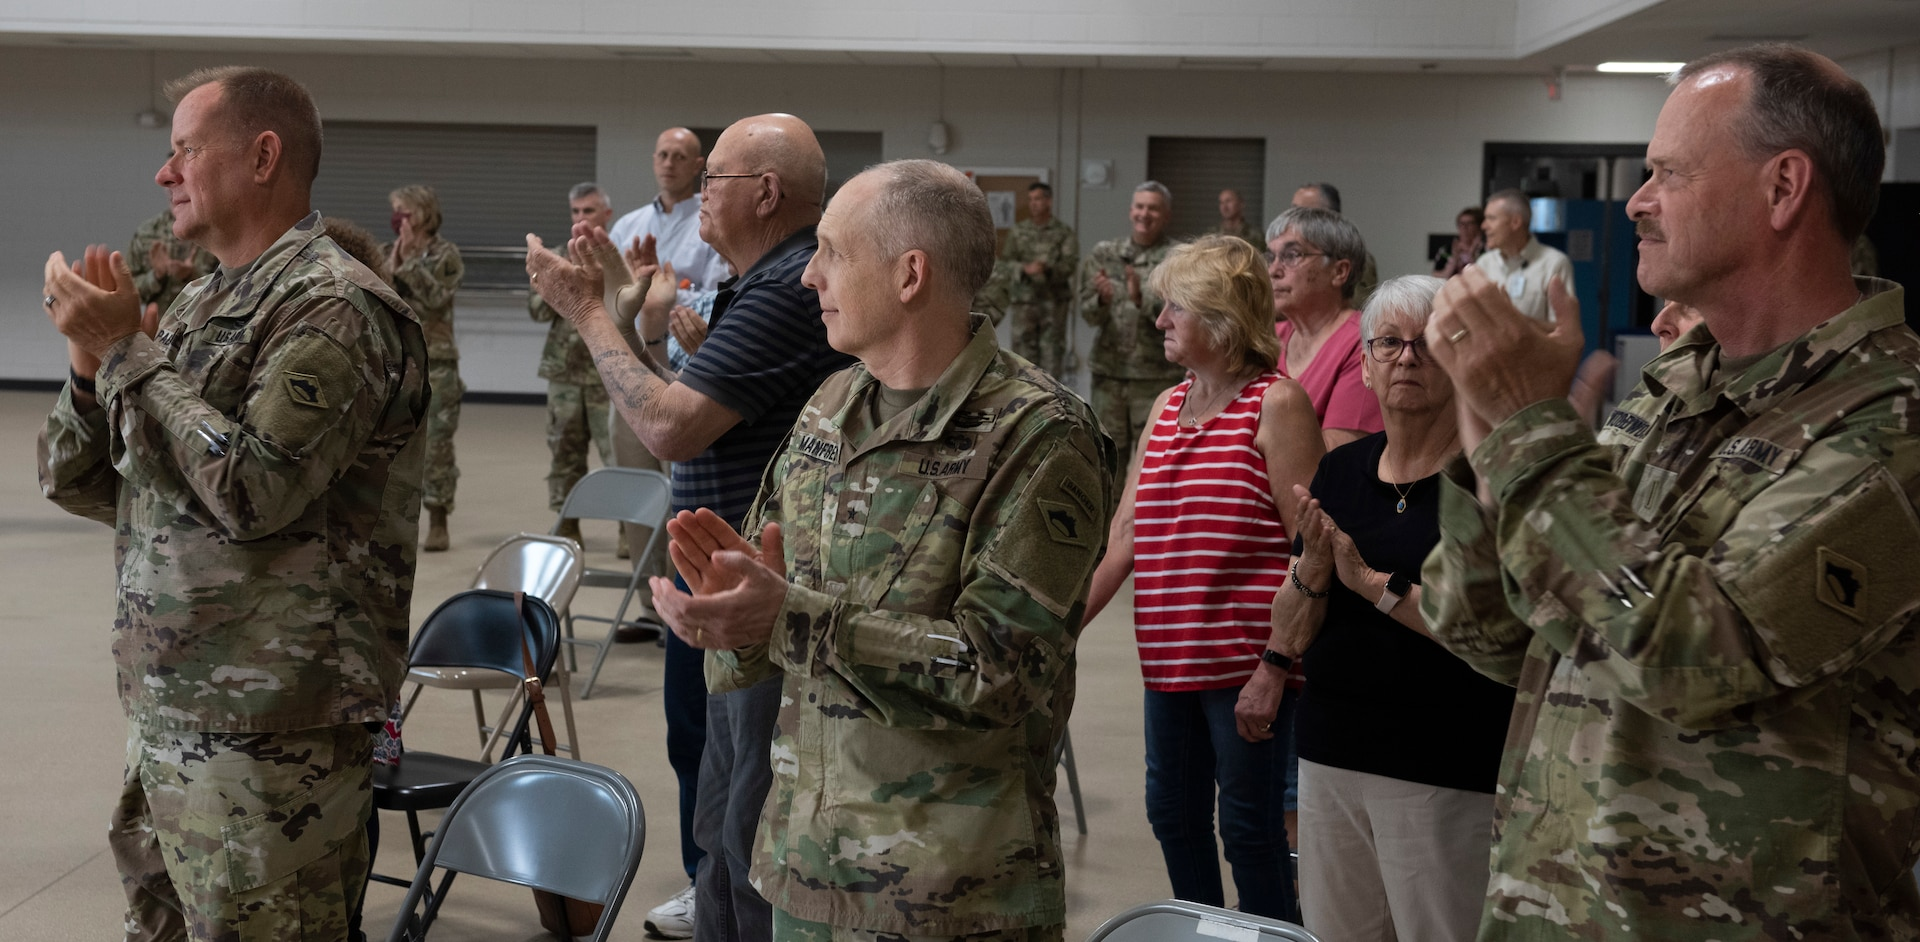 Guests applaud for Soldiers assigned to Task Force Mansfield at the end of the task force's sendoff ceremony May 18, 2021, at Camp Colchester, Vermont. The task force will deploy to the U.S. European Command area of operations for about one year.